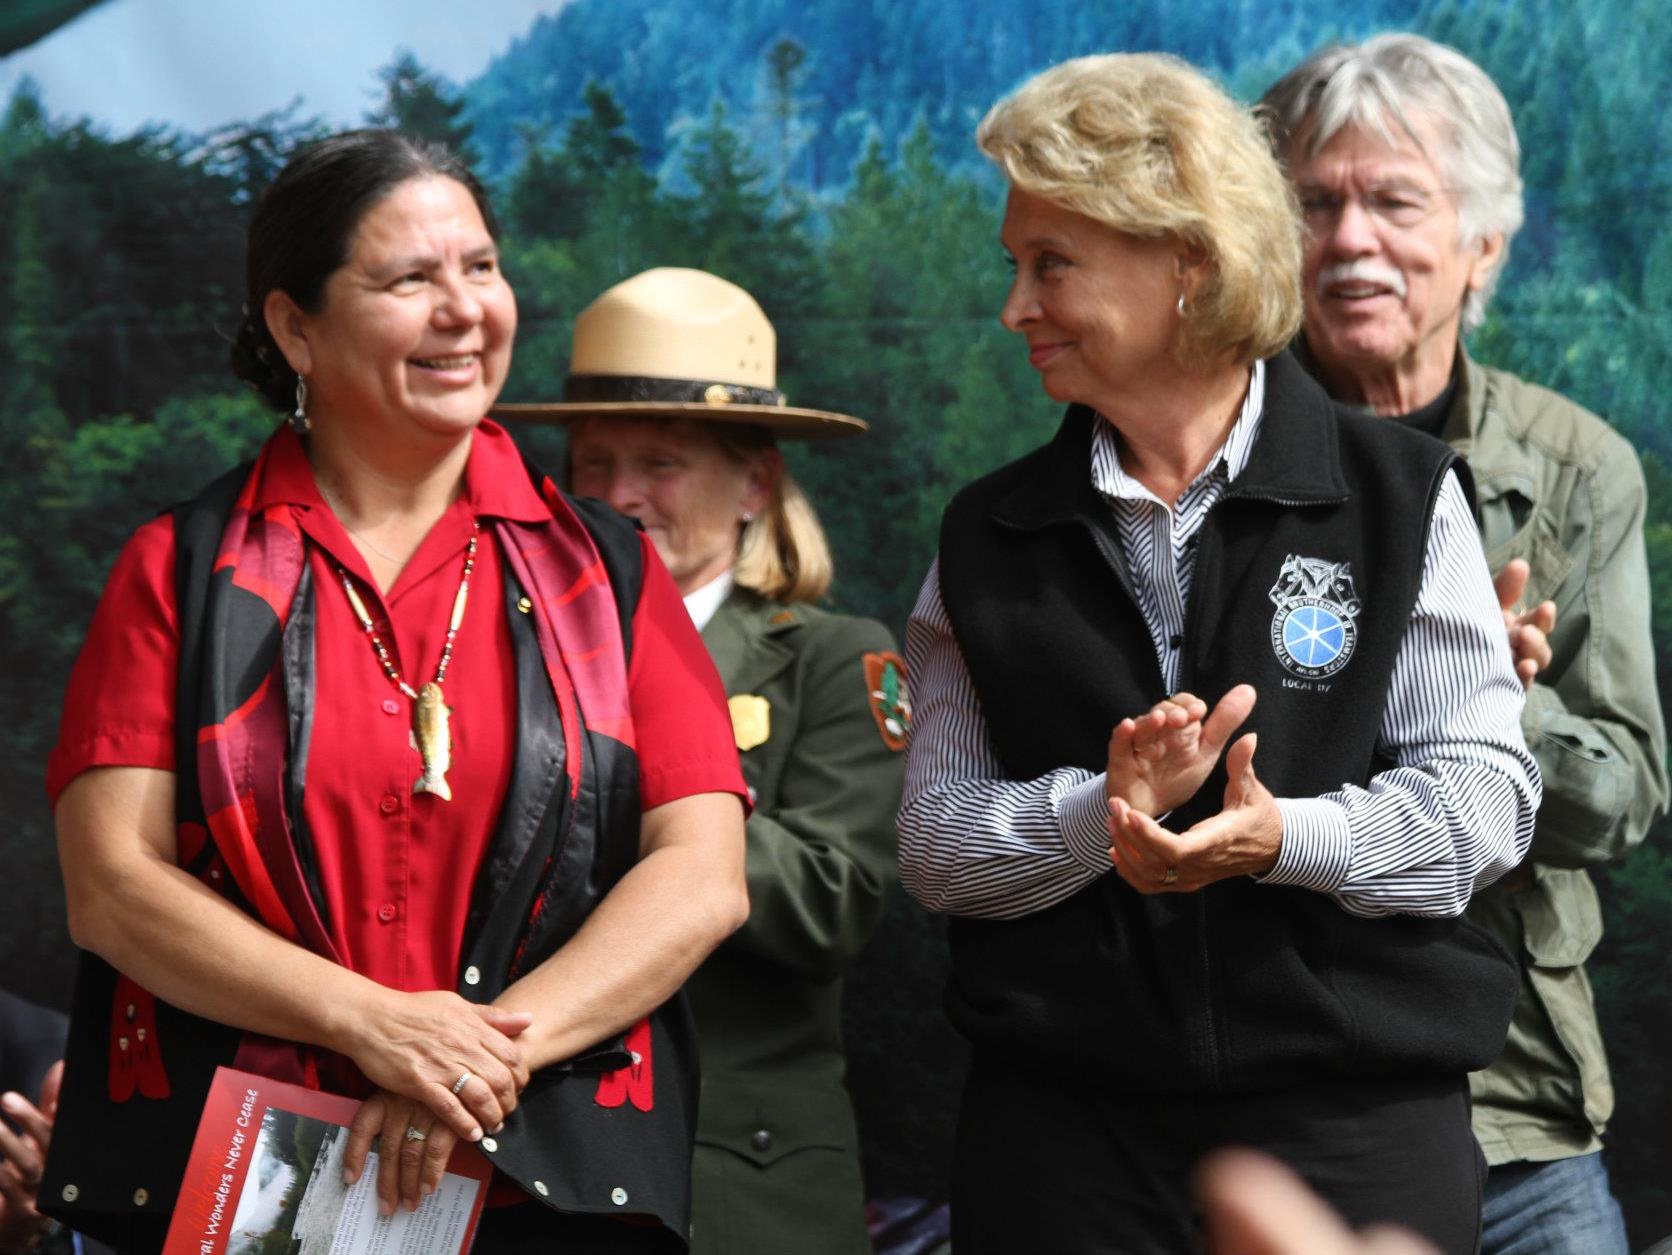 Frances Charles re-elected as chair of Lower Elwha Klallam Tribe